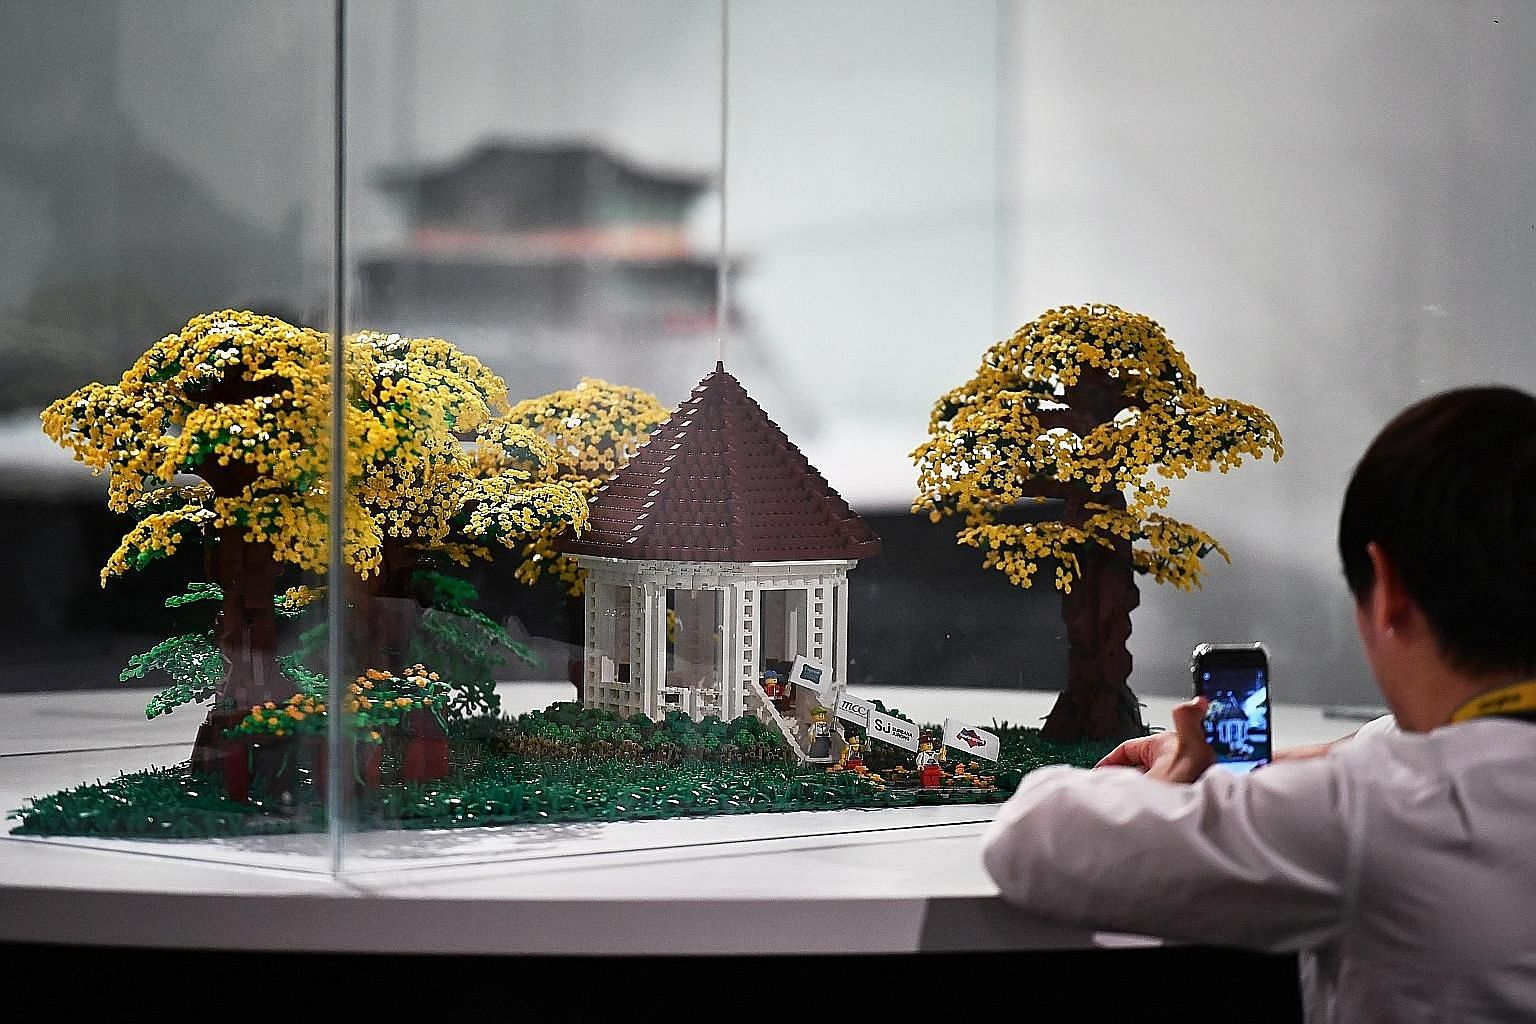 A Lego replica of the Singapore Botanic Gardens made its debut at the Piece Of Peace exhibition, which kicked off yesterday at the Fort Canning Arts Centre. The model, which took 14 days to build, is made up of some 10,000 Lego bricks and comprises a